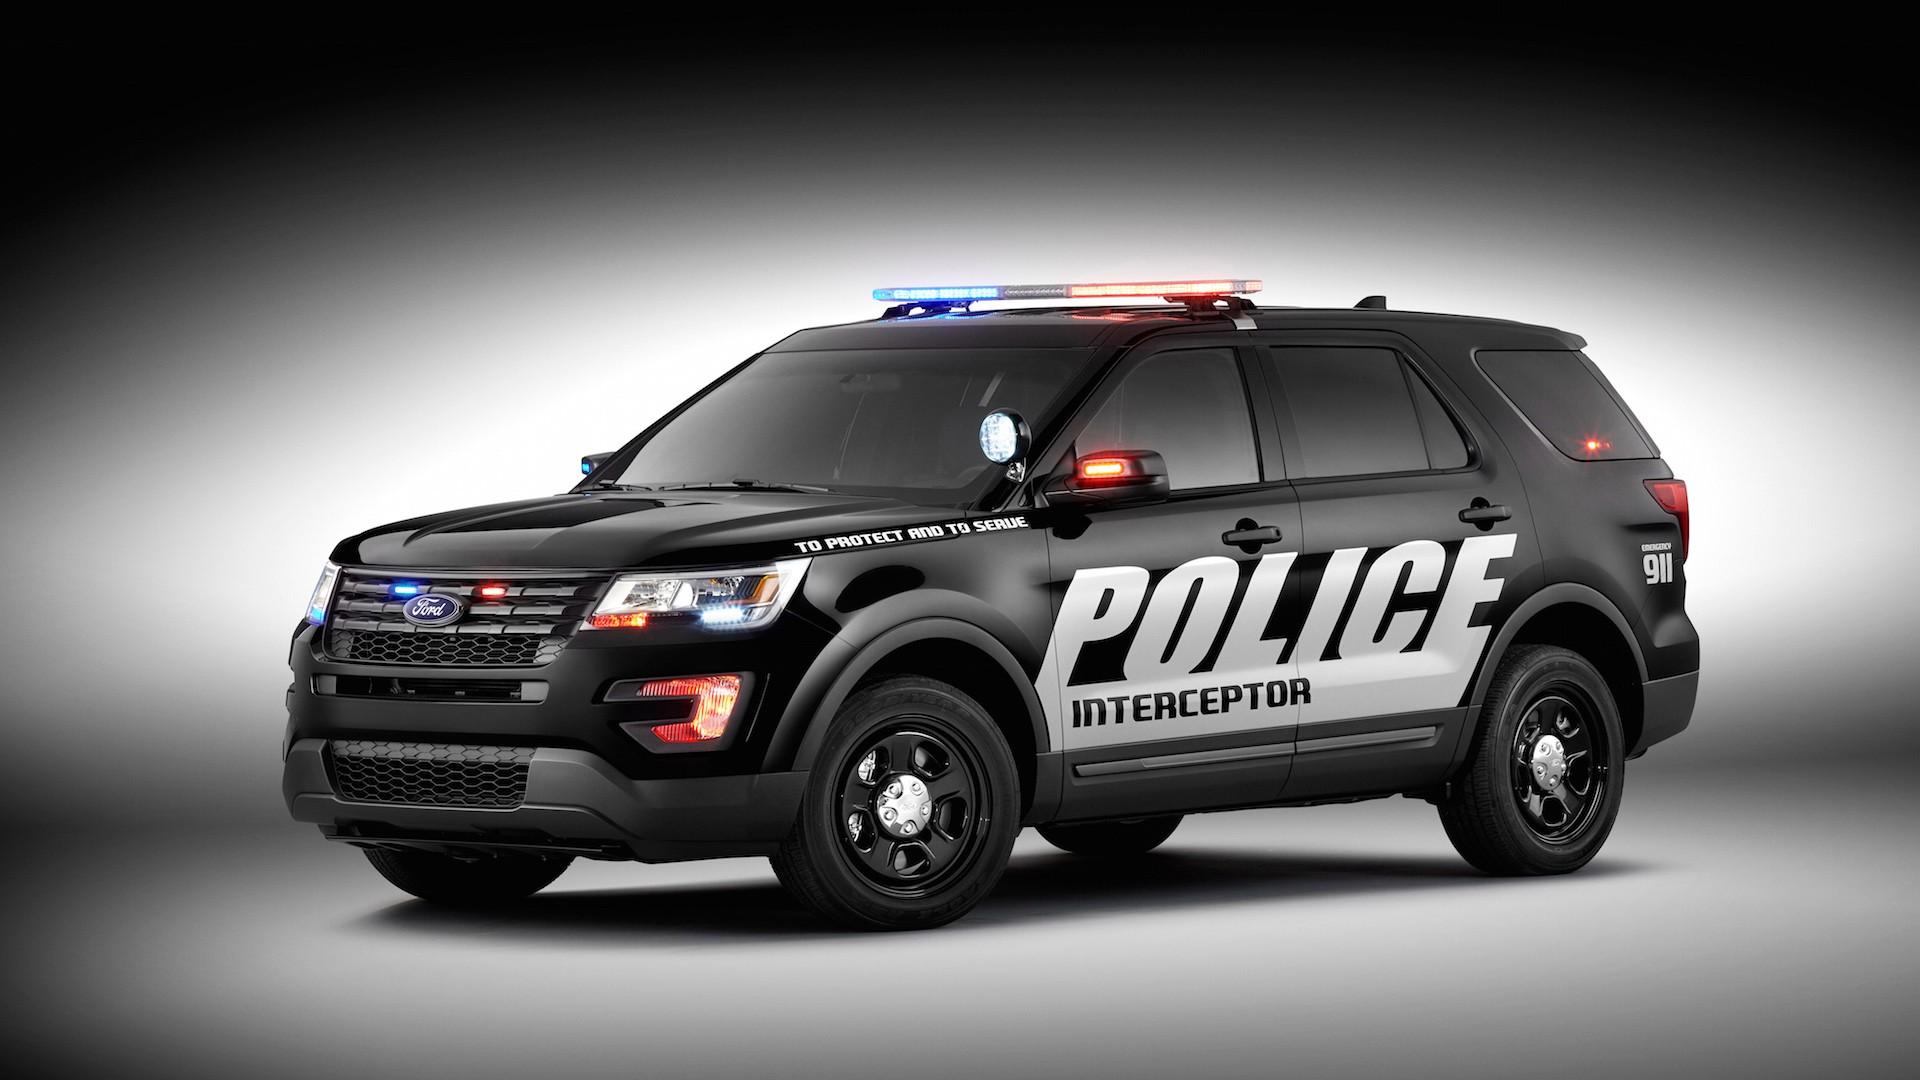 2016 Ford Police Interceptor Wallpaper | HD Car Wallpapers